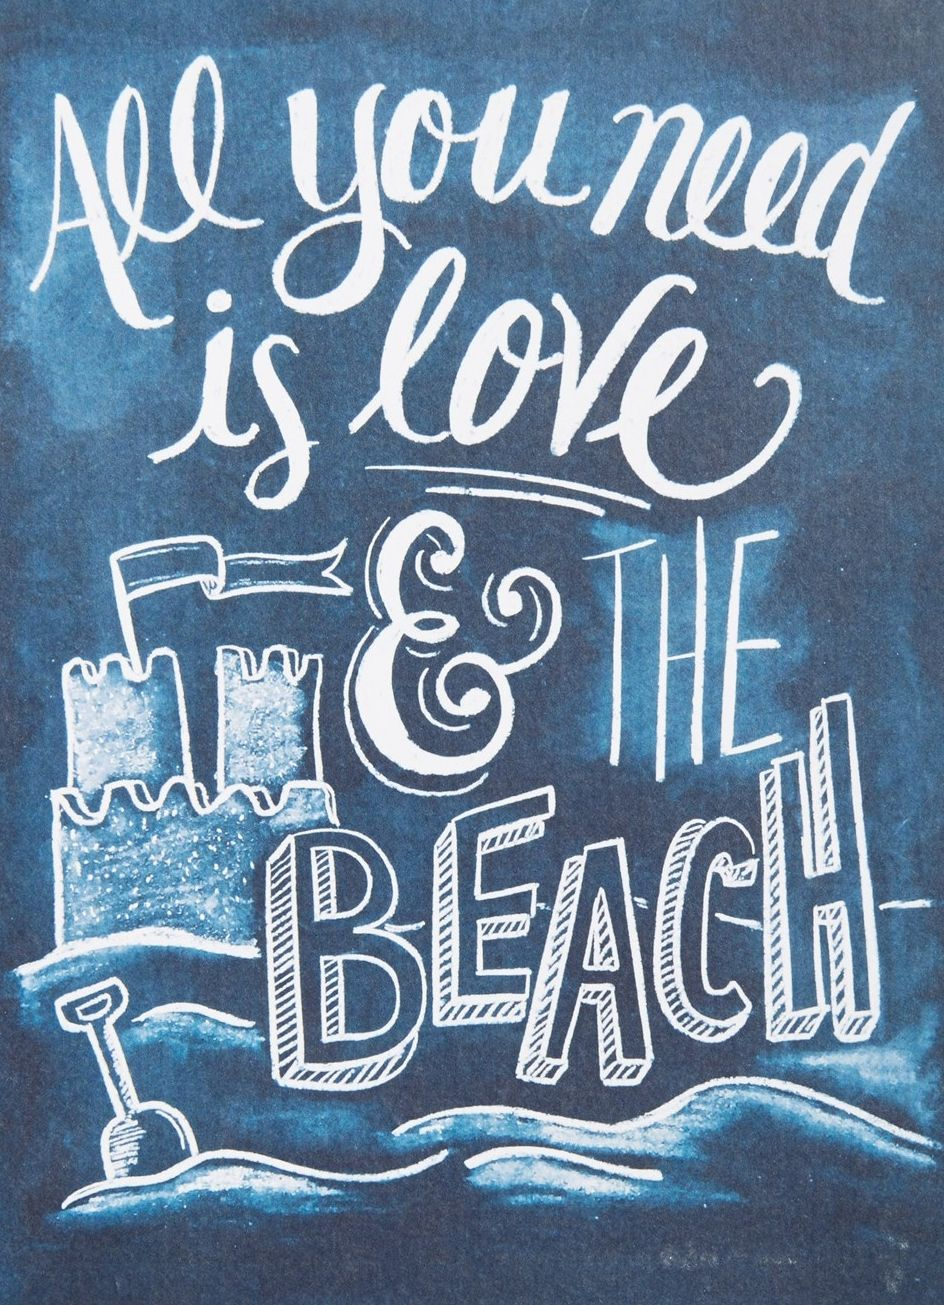 All you need is love & the beach. Sand 'N Sea Properties LLC, Galveston, TX #sandnseavacation #vacationrental #sandnsea